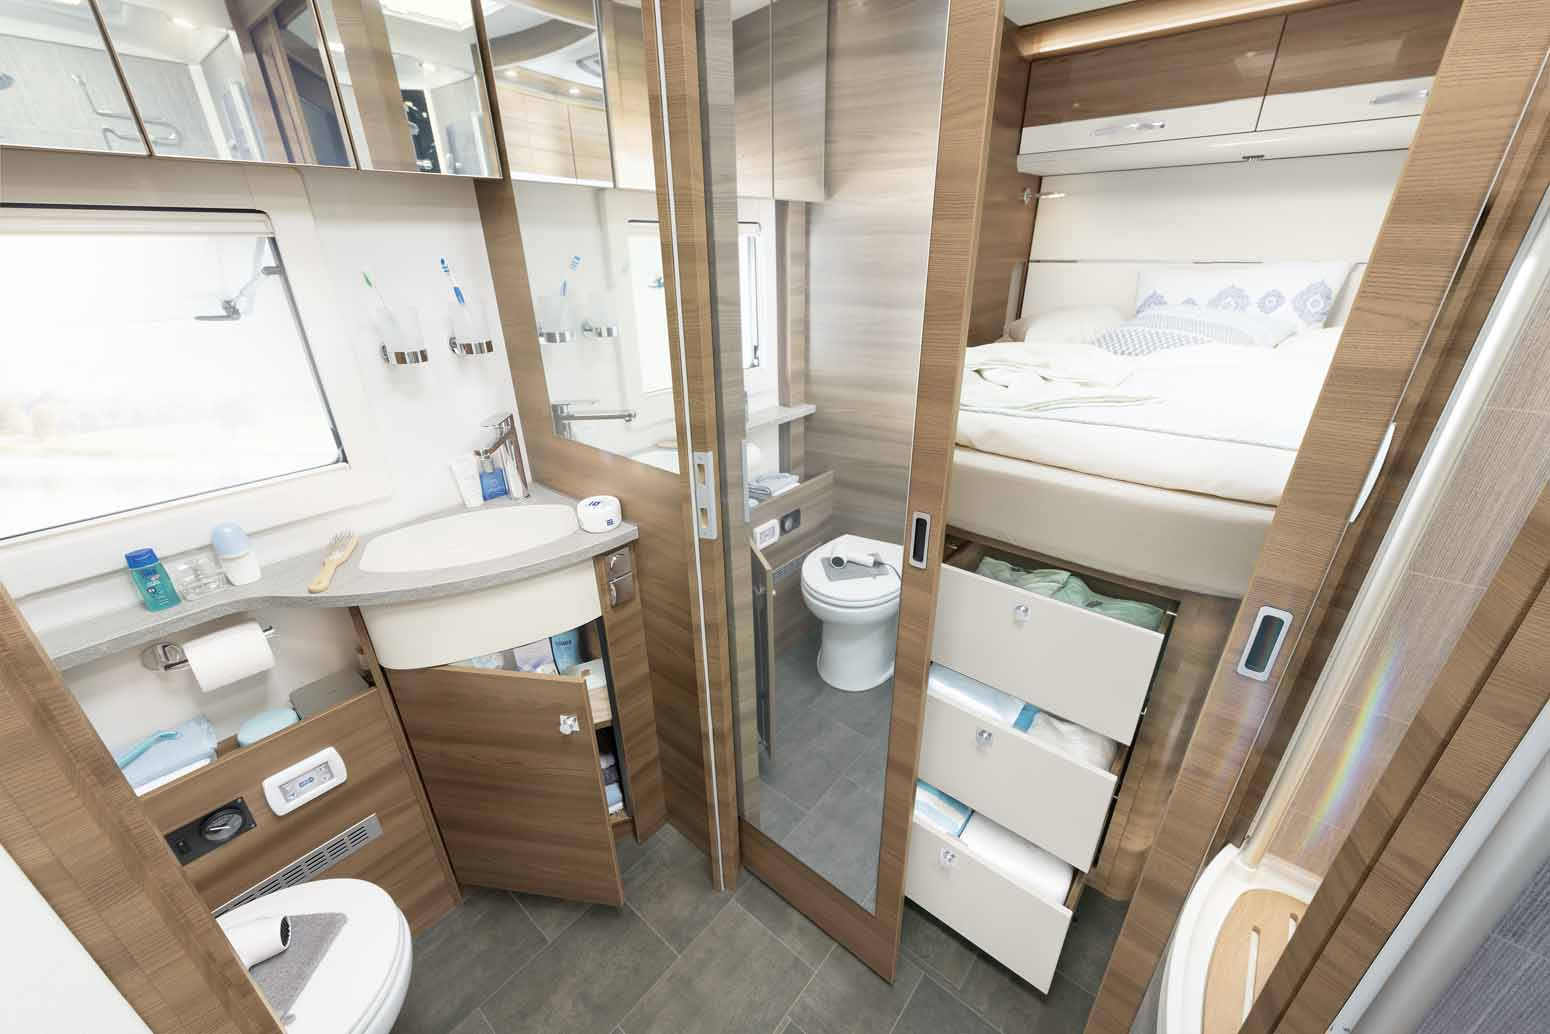 Large bathroom with unbeatable space and storage • A 9050-2